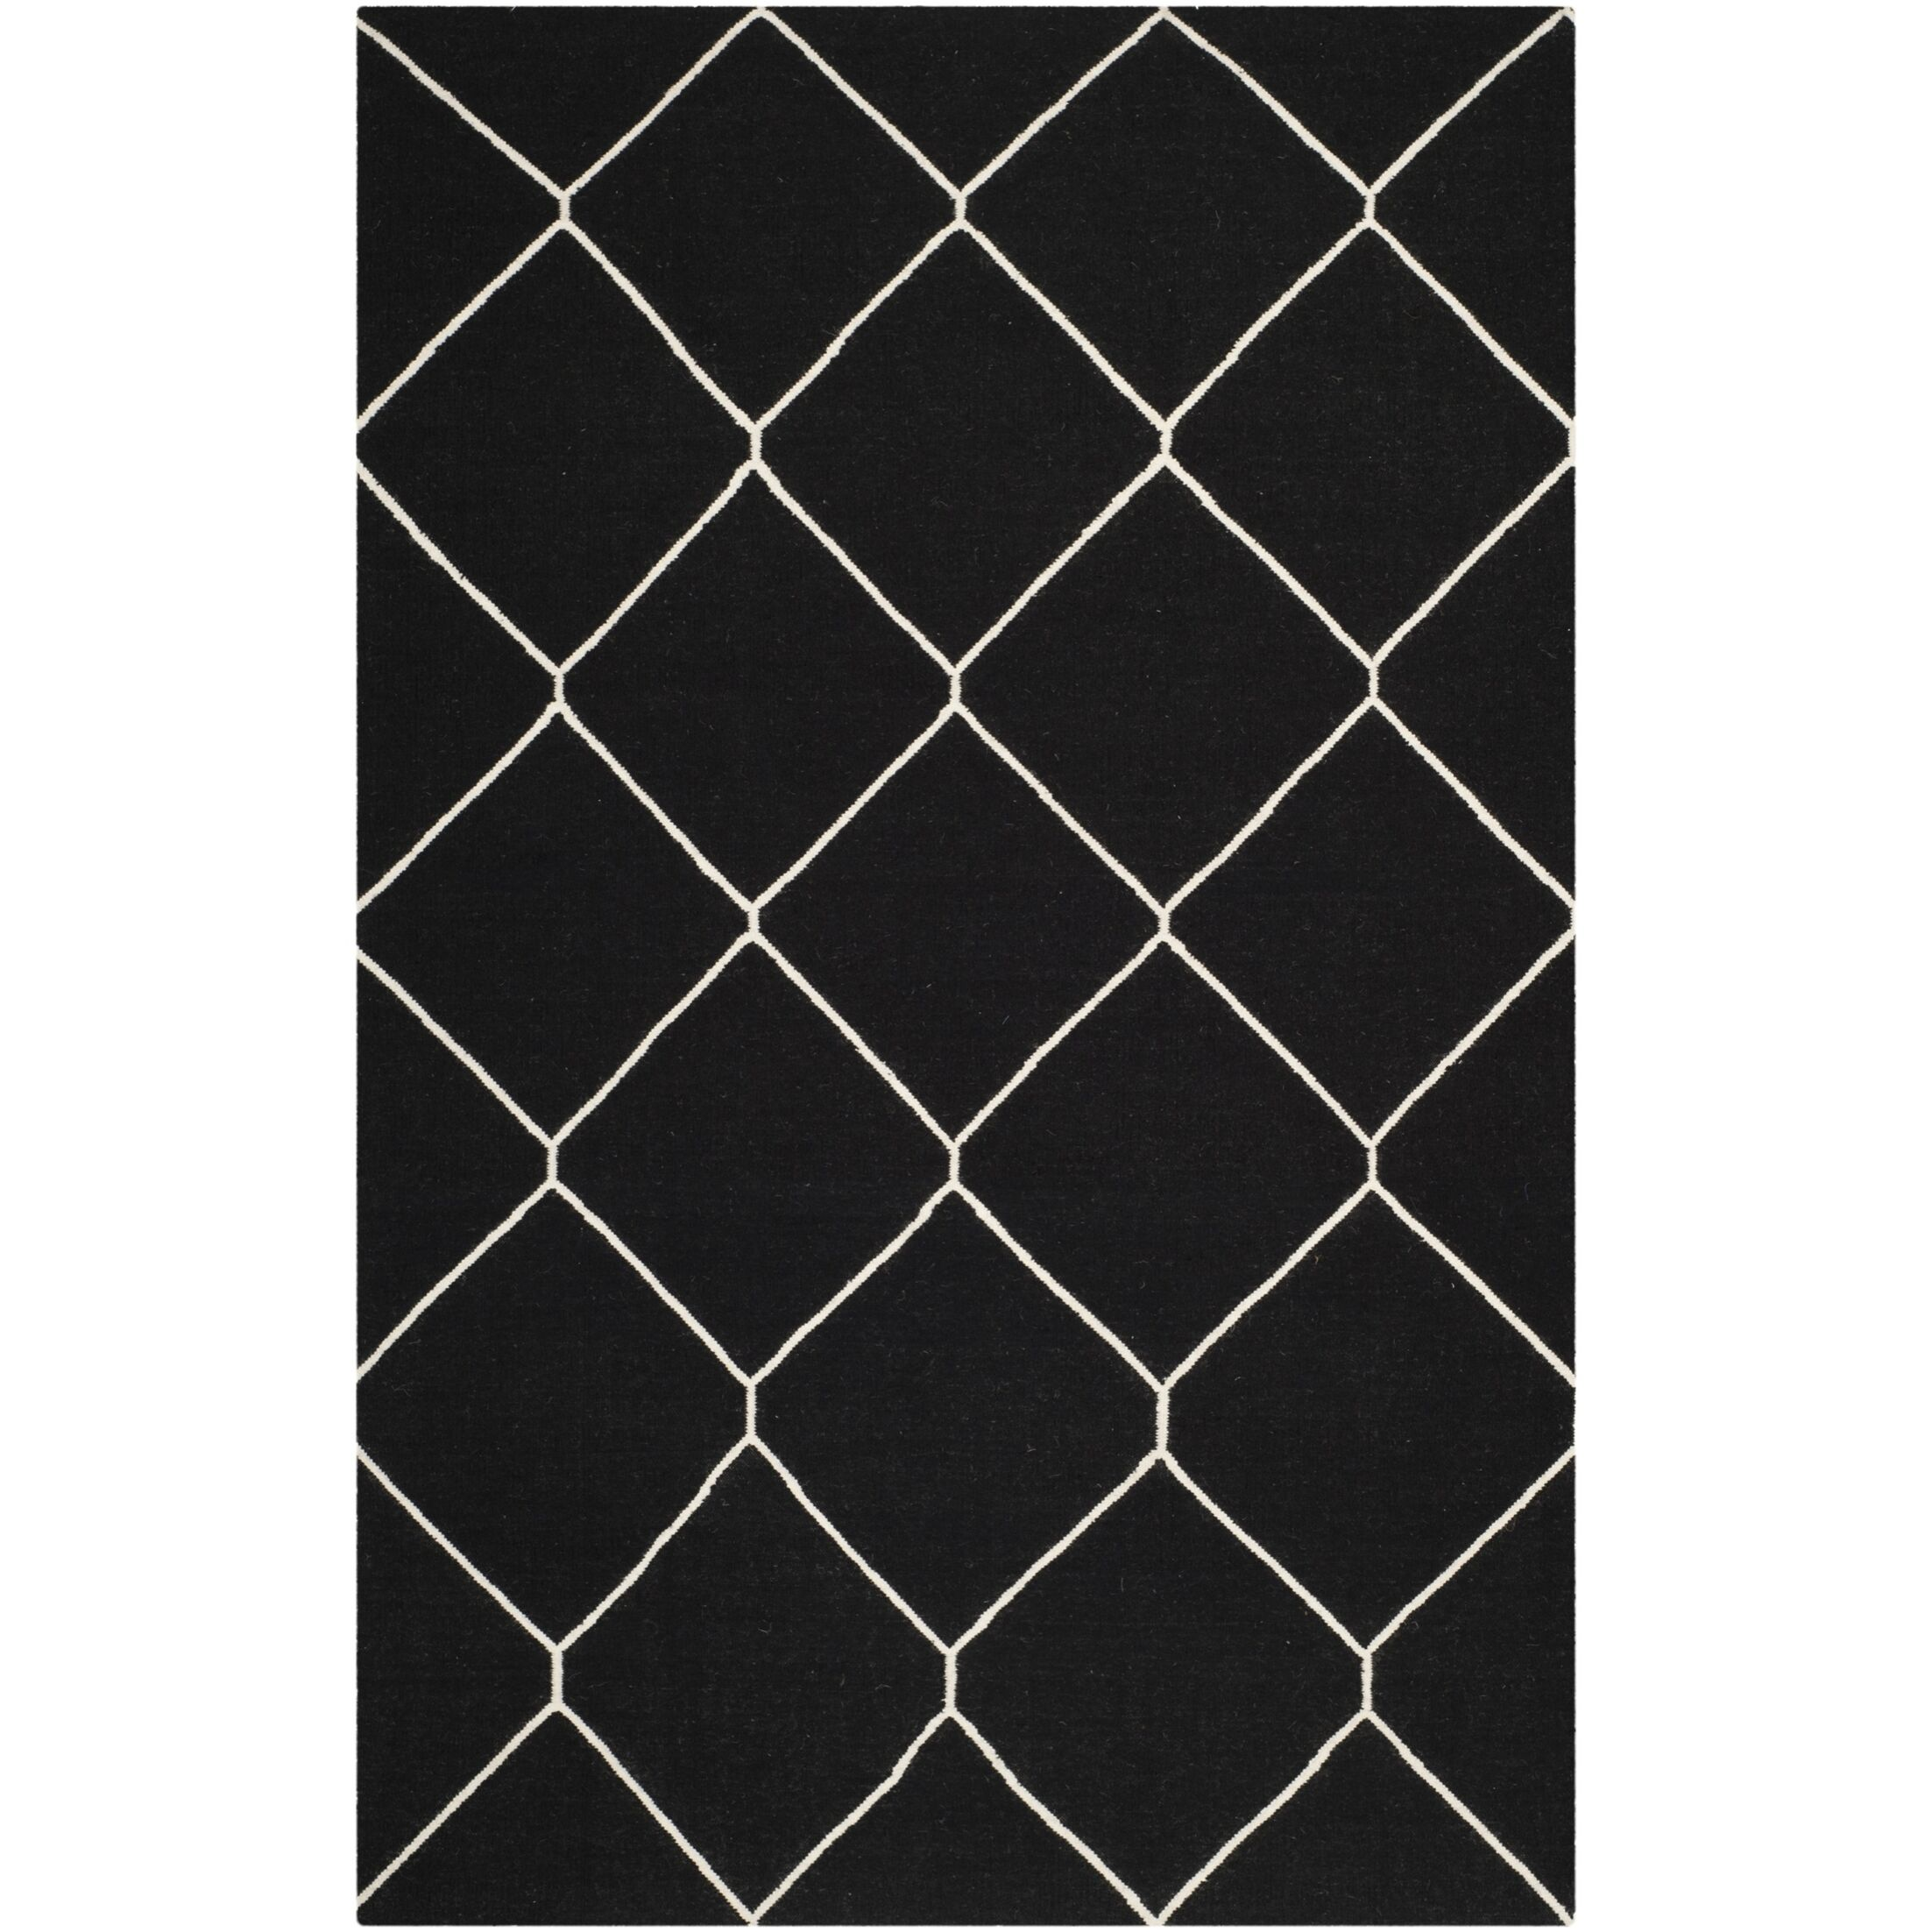 Dhurries Black/Ivory Area Rug Rug Size: Rectangle 6' x 9'